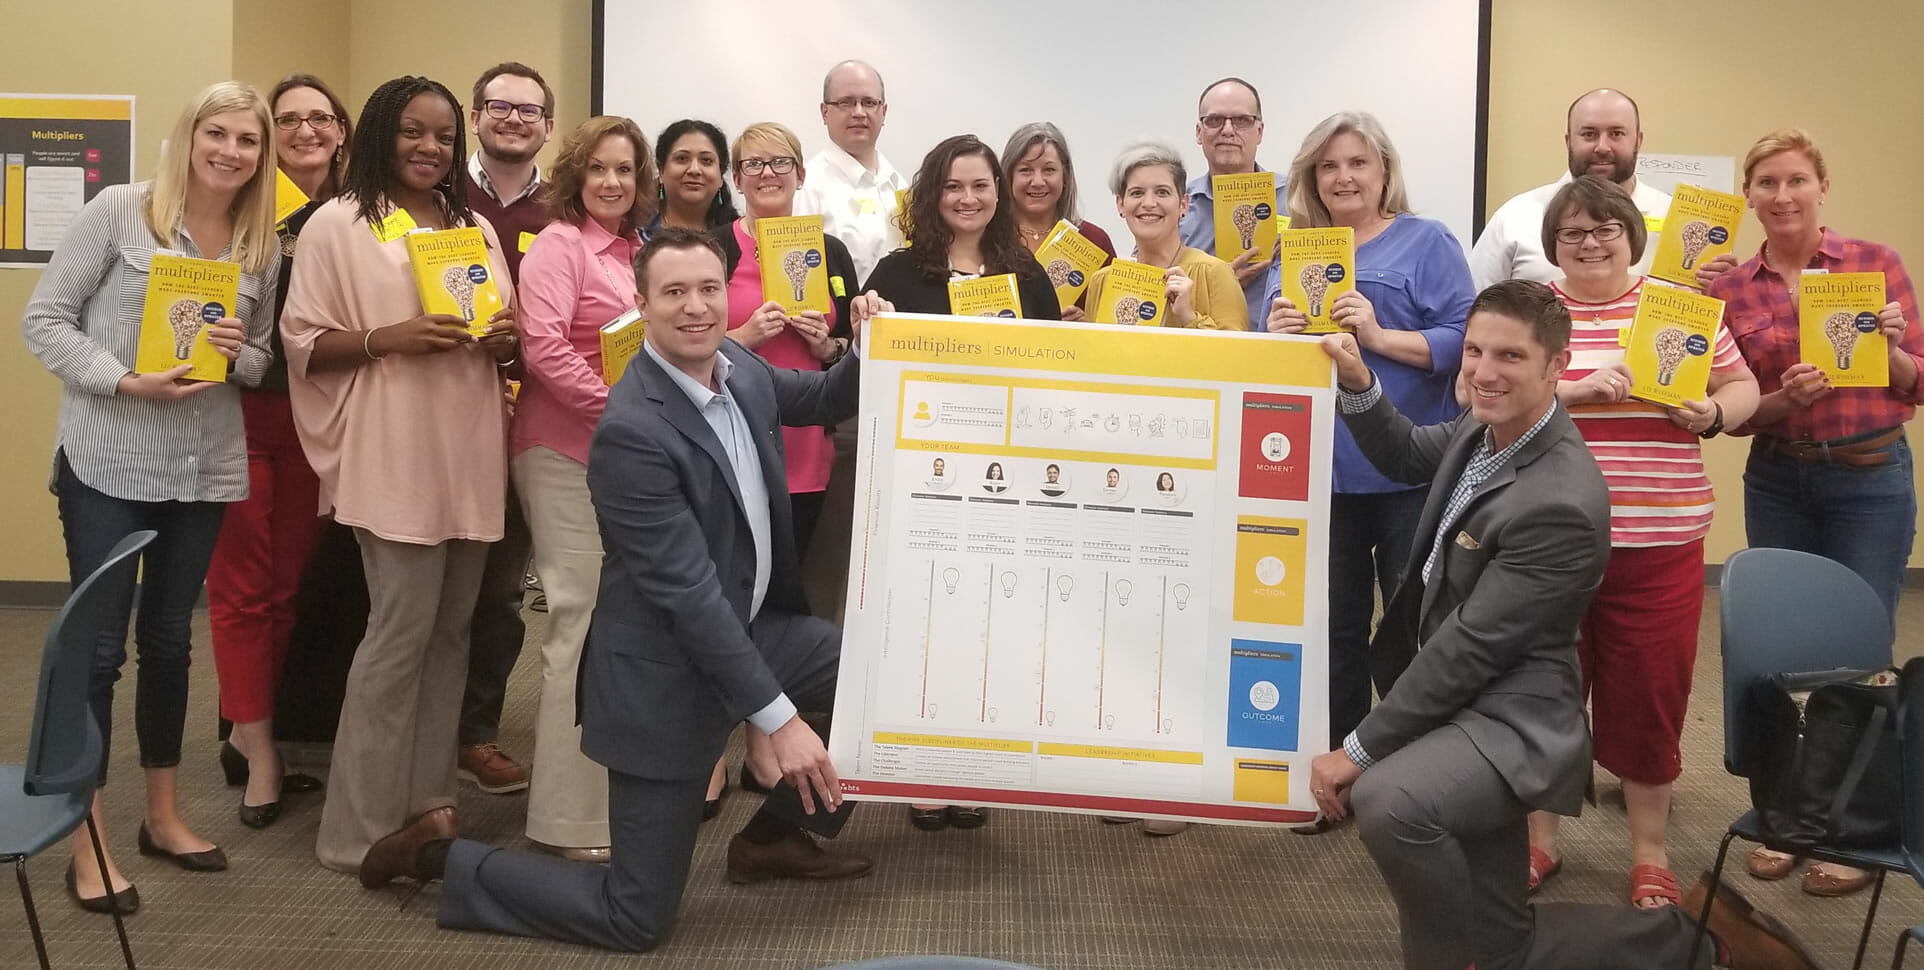 Nashville leaders learned about becoming Multipliers in our complimentary showcase Oct. 12 that also benefitted the Second Harvest Food Bank. It's time to nominate a leader you love for Multiplier of the Year.